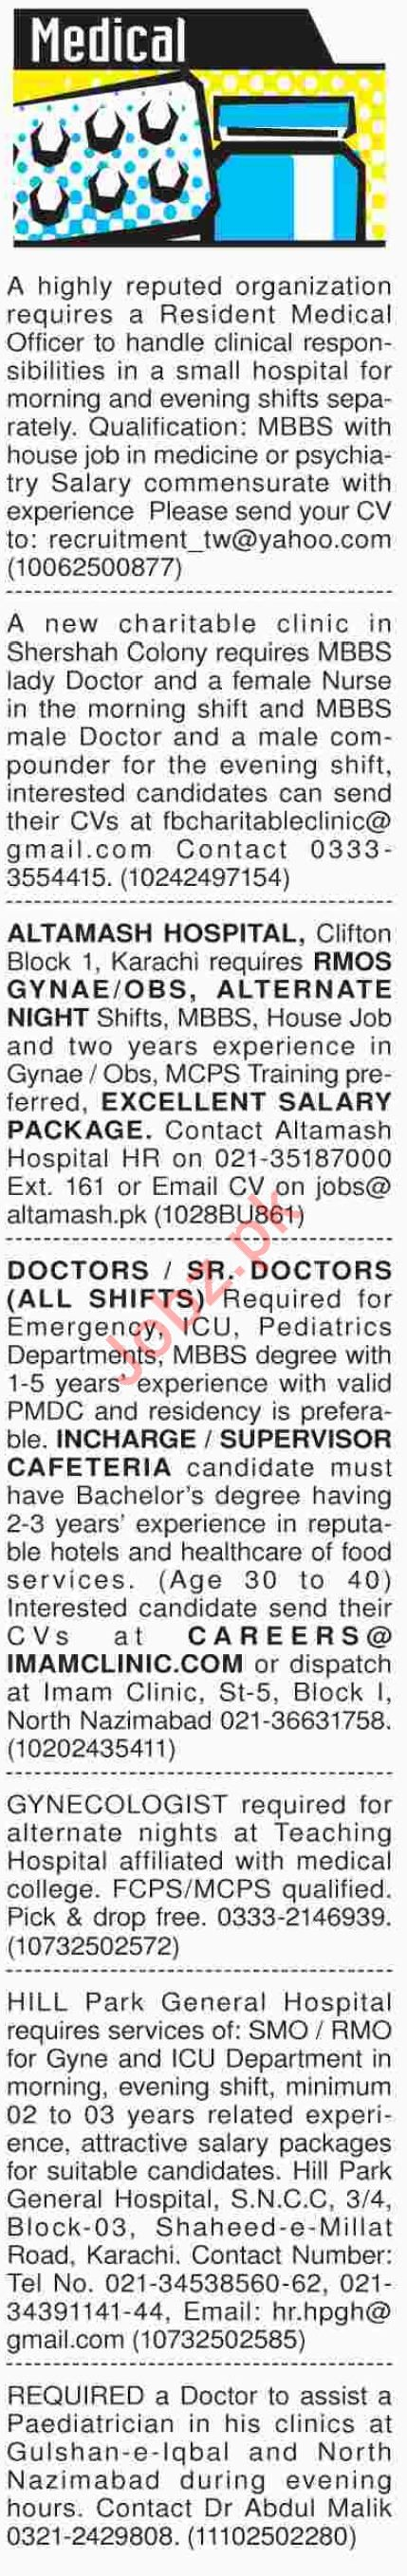 Dawn Sunday Medical Classified Ads 21/10/2018